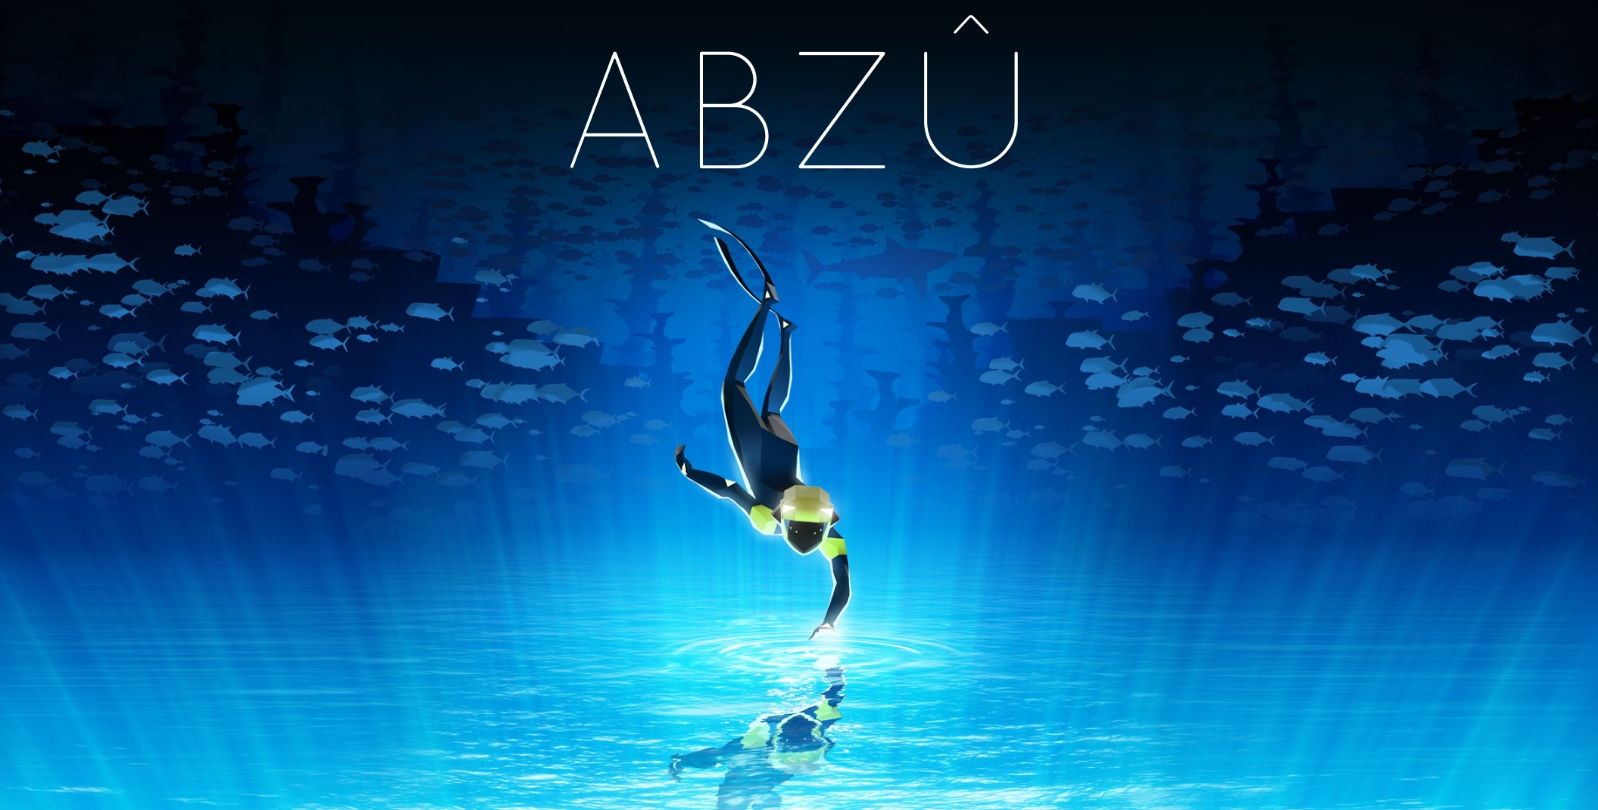 Abzu Is Scuba Journey Coming Out In August